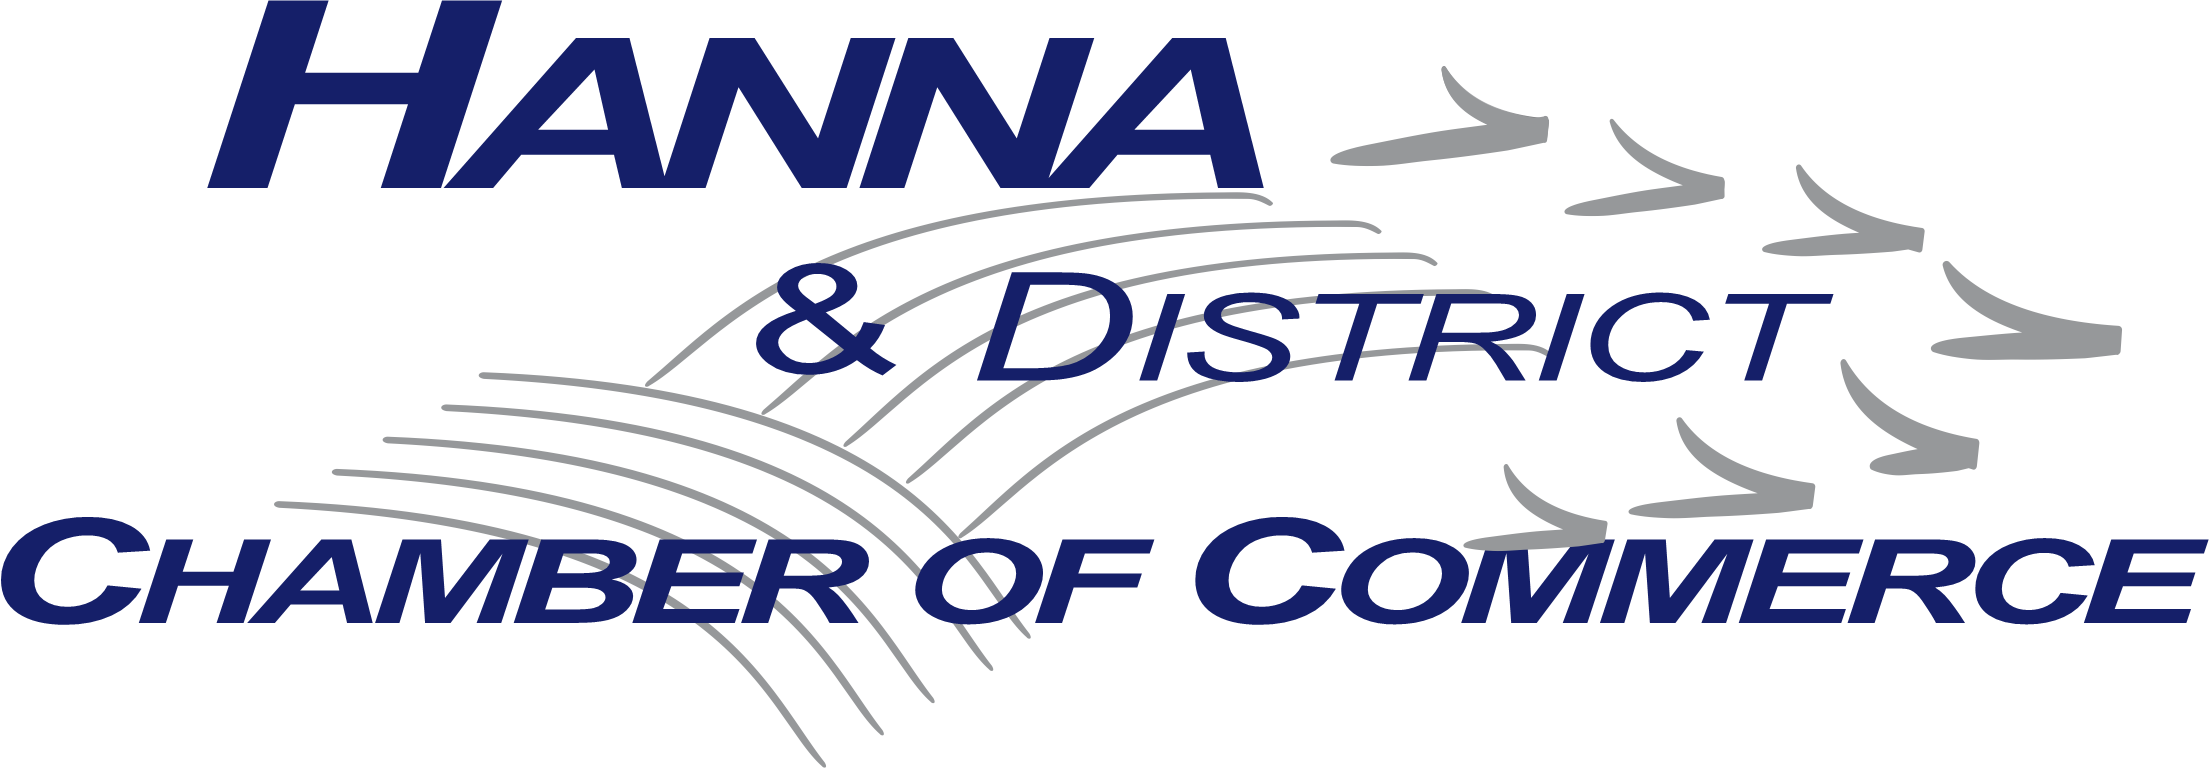 Hanna Chamber of Commerce Logo